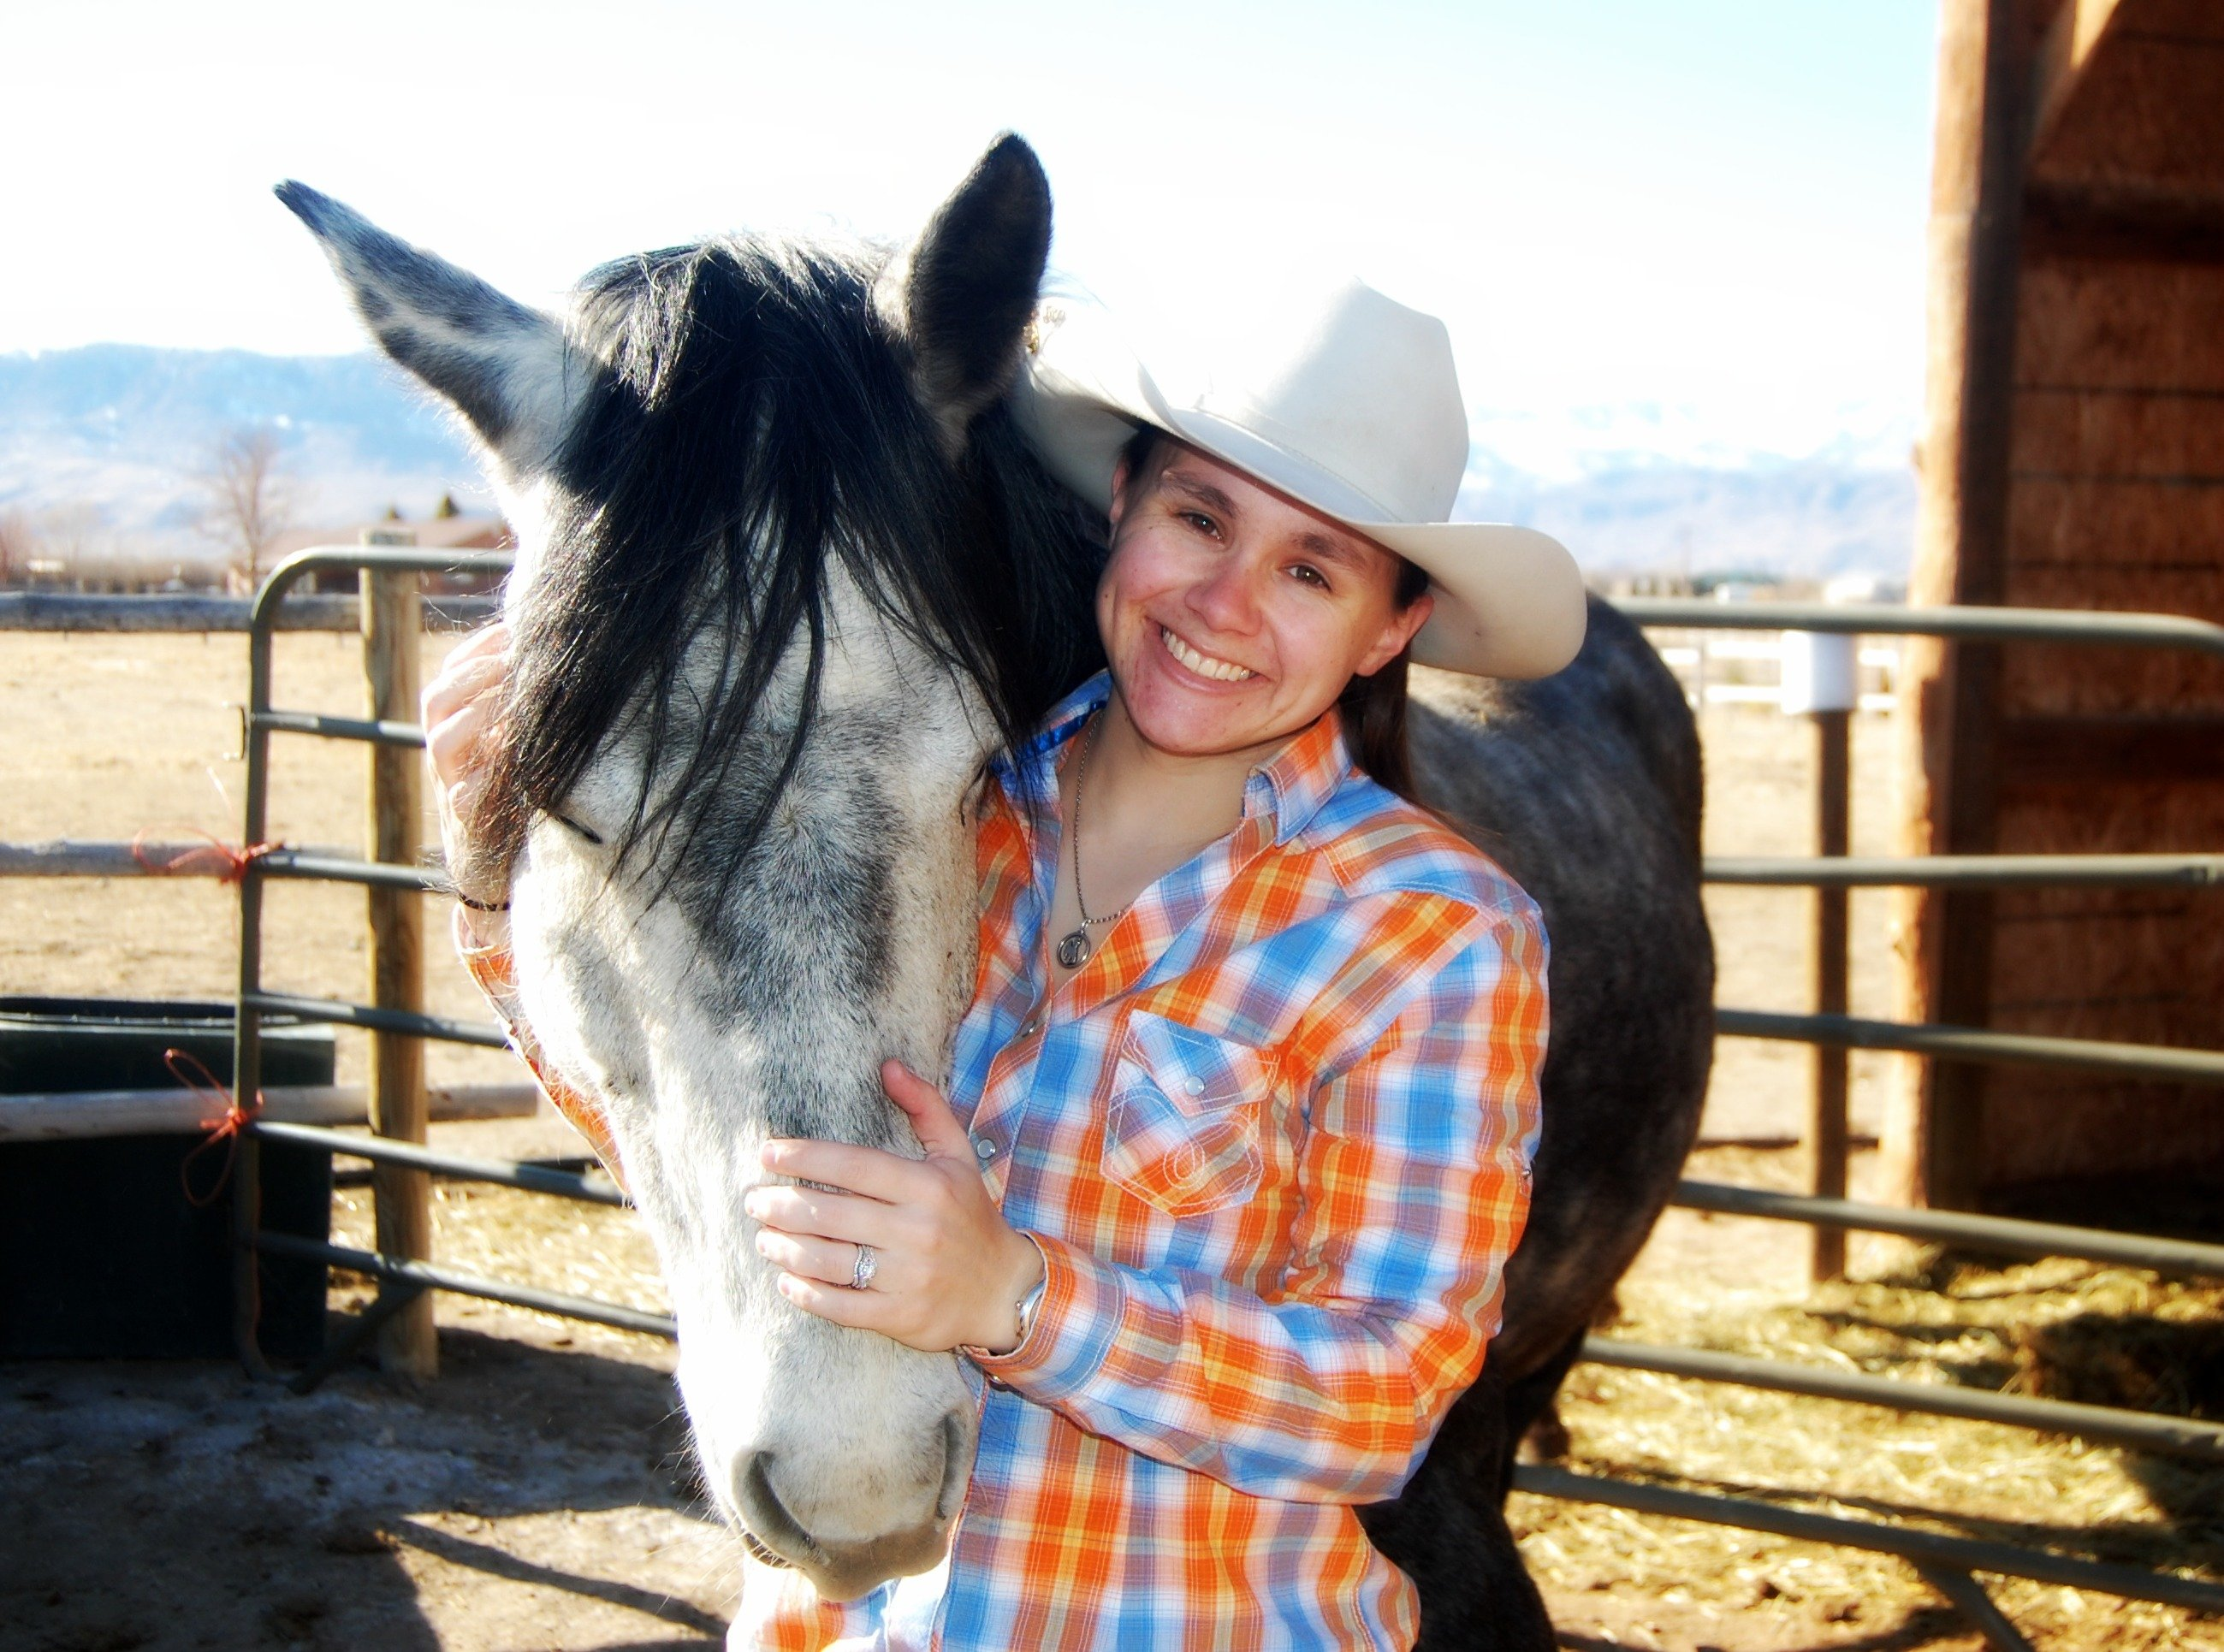 Team member Tessa with her horse